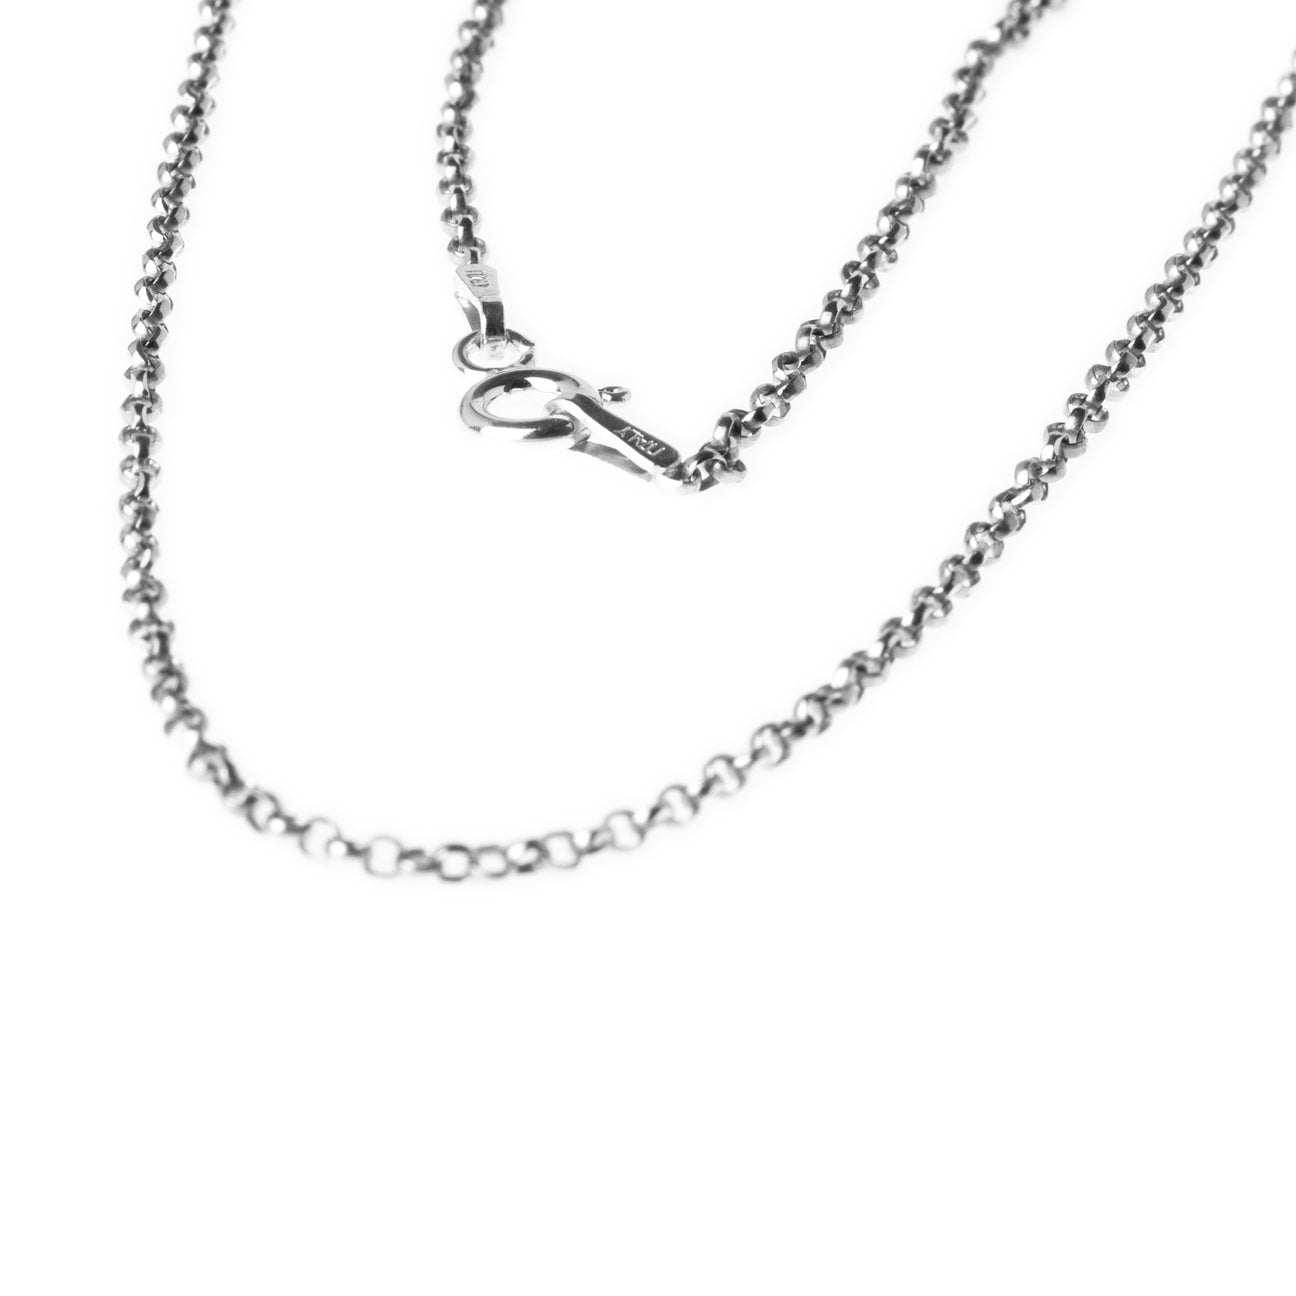 Sterling Silver Belcher Chain with Ring Clasp C-7942